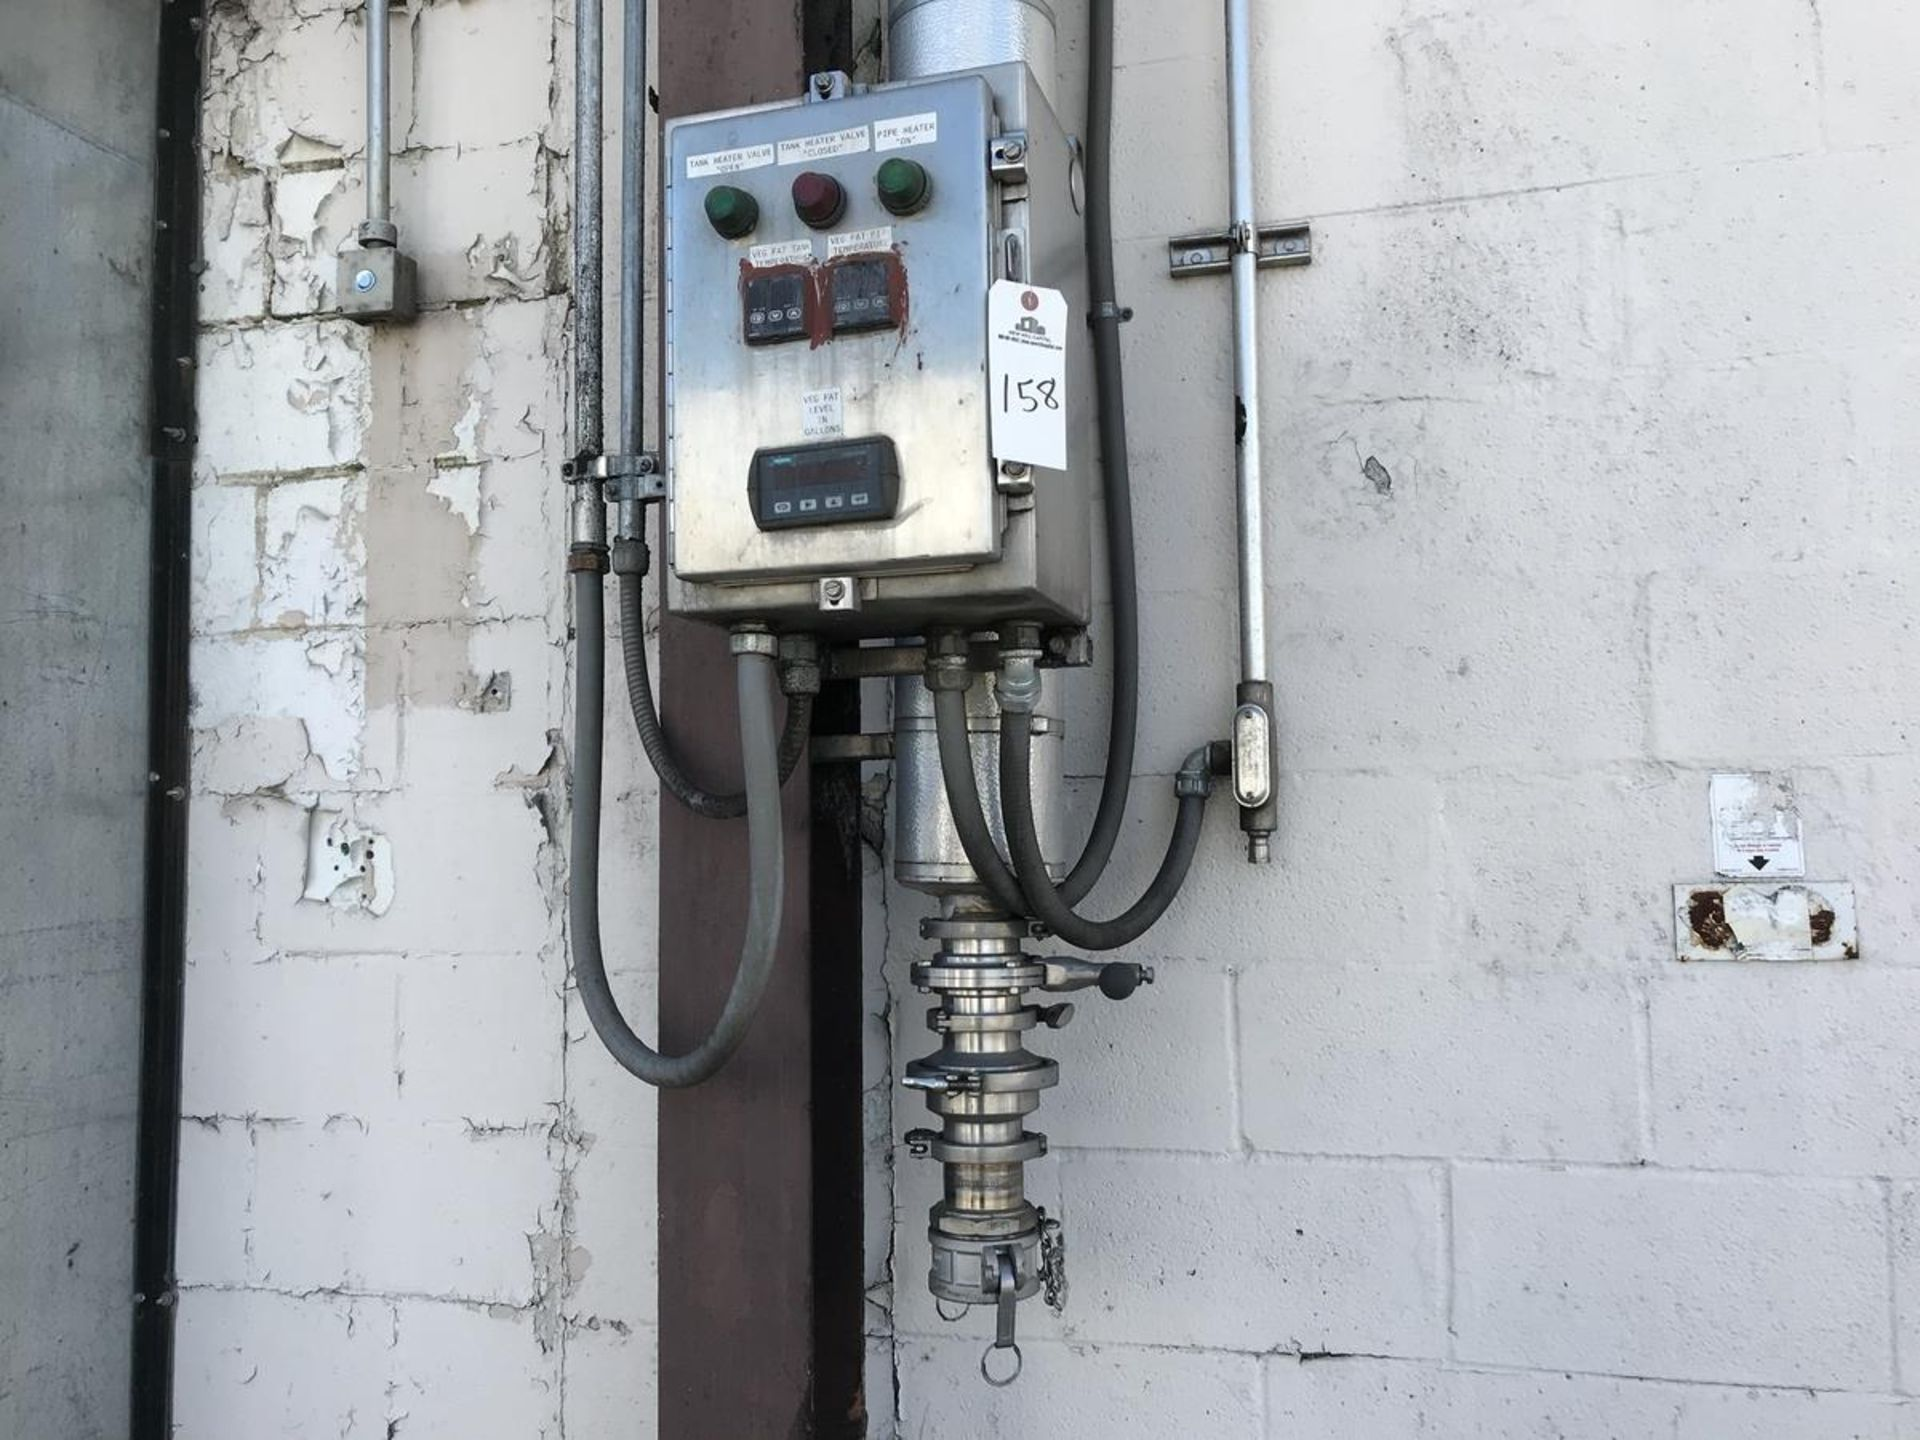 Lot 158 - Filling Control Panel with Check Valve and Butterfly Valve | Rig Fee: $150